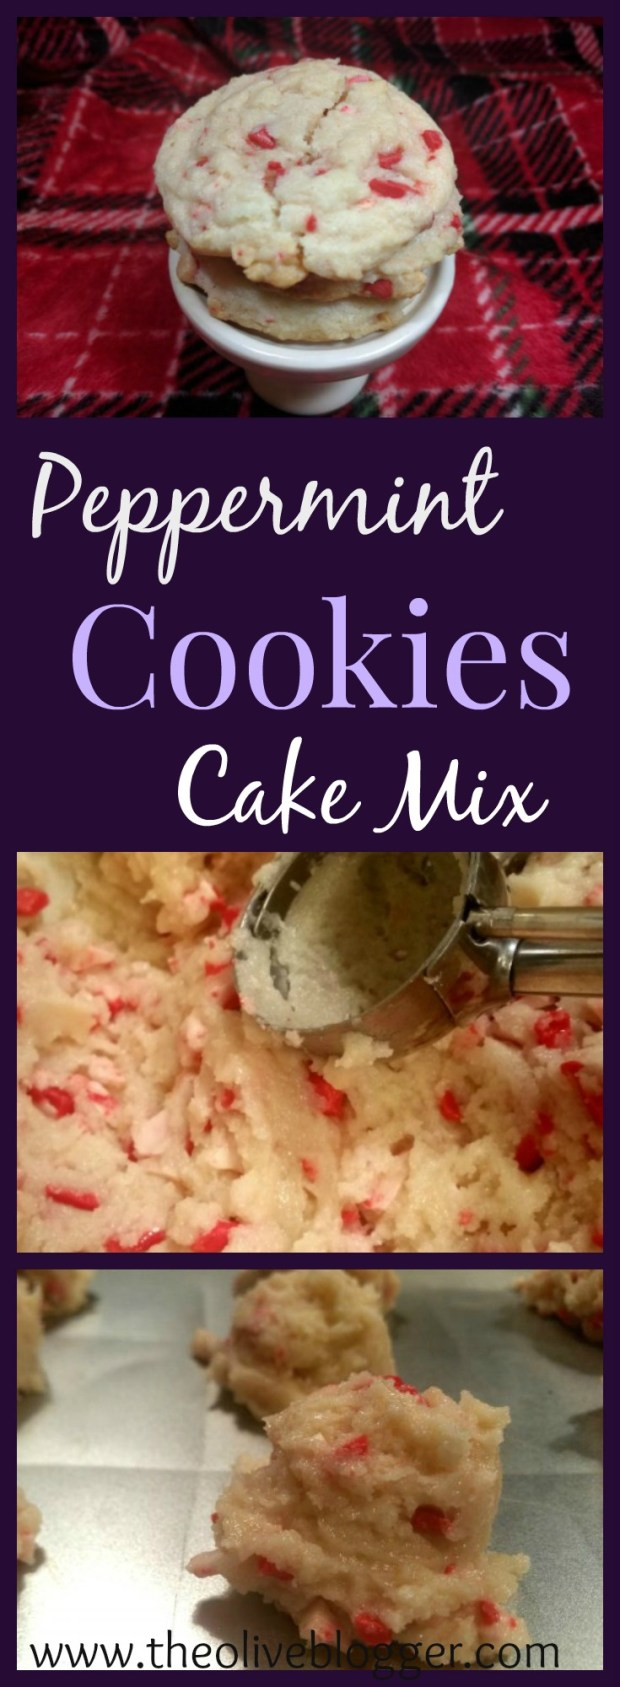 Peppermint Cookies- The EASIEST Christmas Cookies you will make this year, using boxed cake mix and a few other ingredients, you have the yummiest cookie to leave out for Santa!